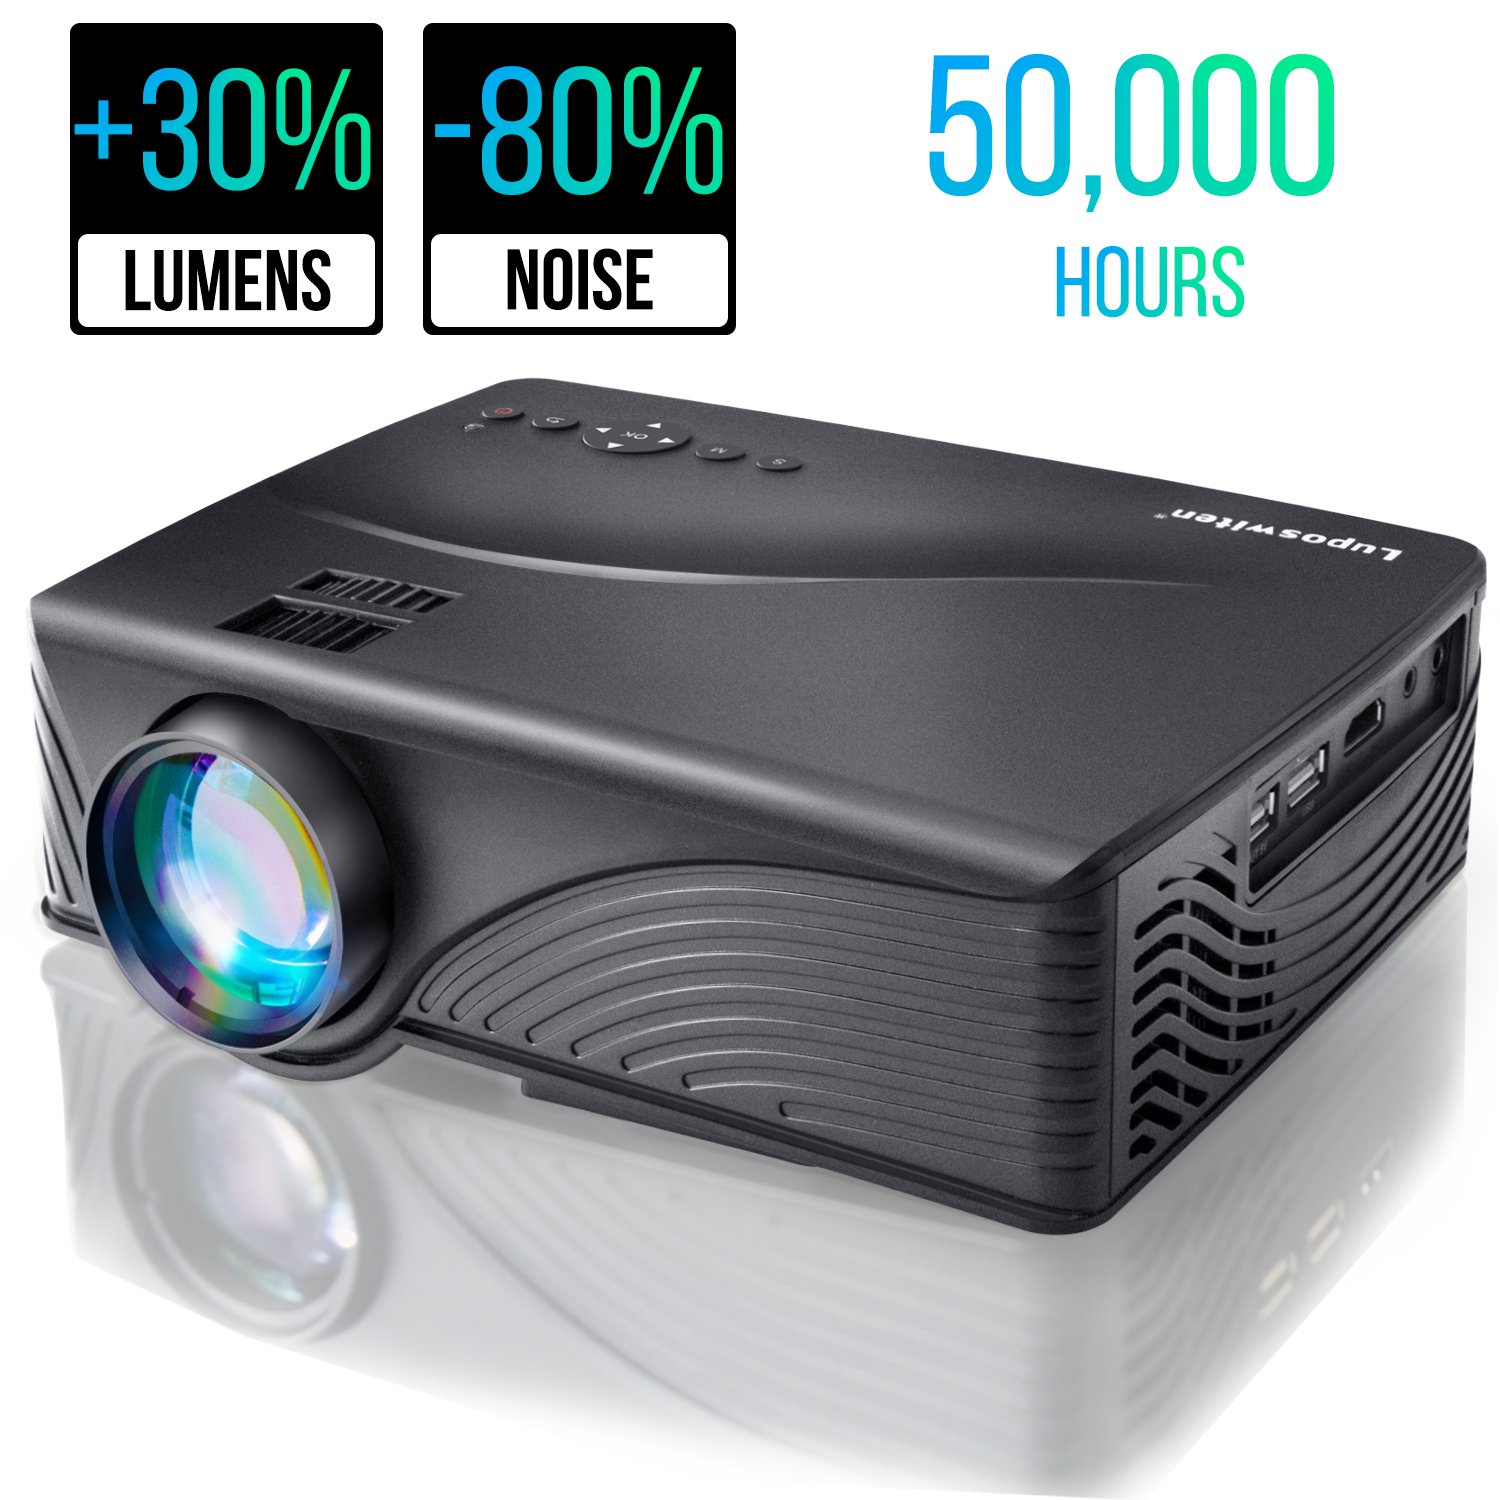 Portable Video Projector 2000 Lumen 1080P 170'' Display 50000 Hour HD LED Mini Projector Support HDMI USB AV Phone ipad Laptop TV Computer DVD SD for Home Theater, Gaming, Outdoor Movie